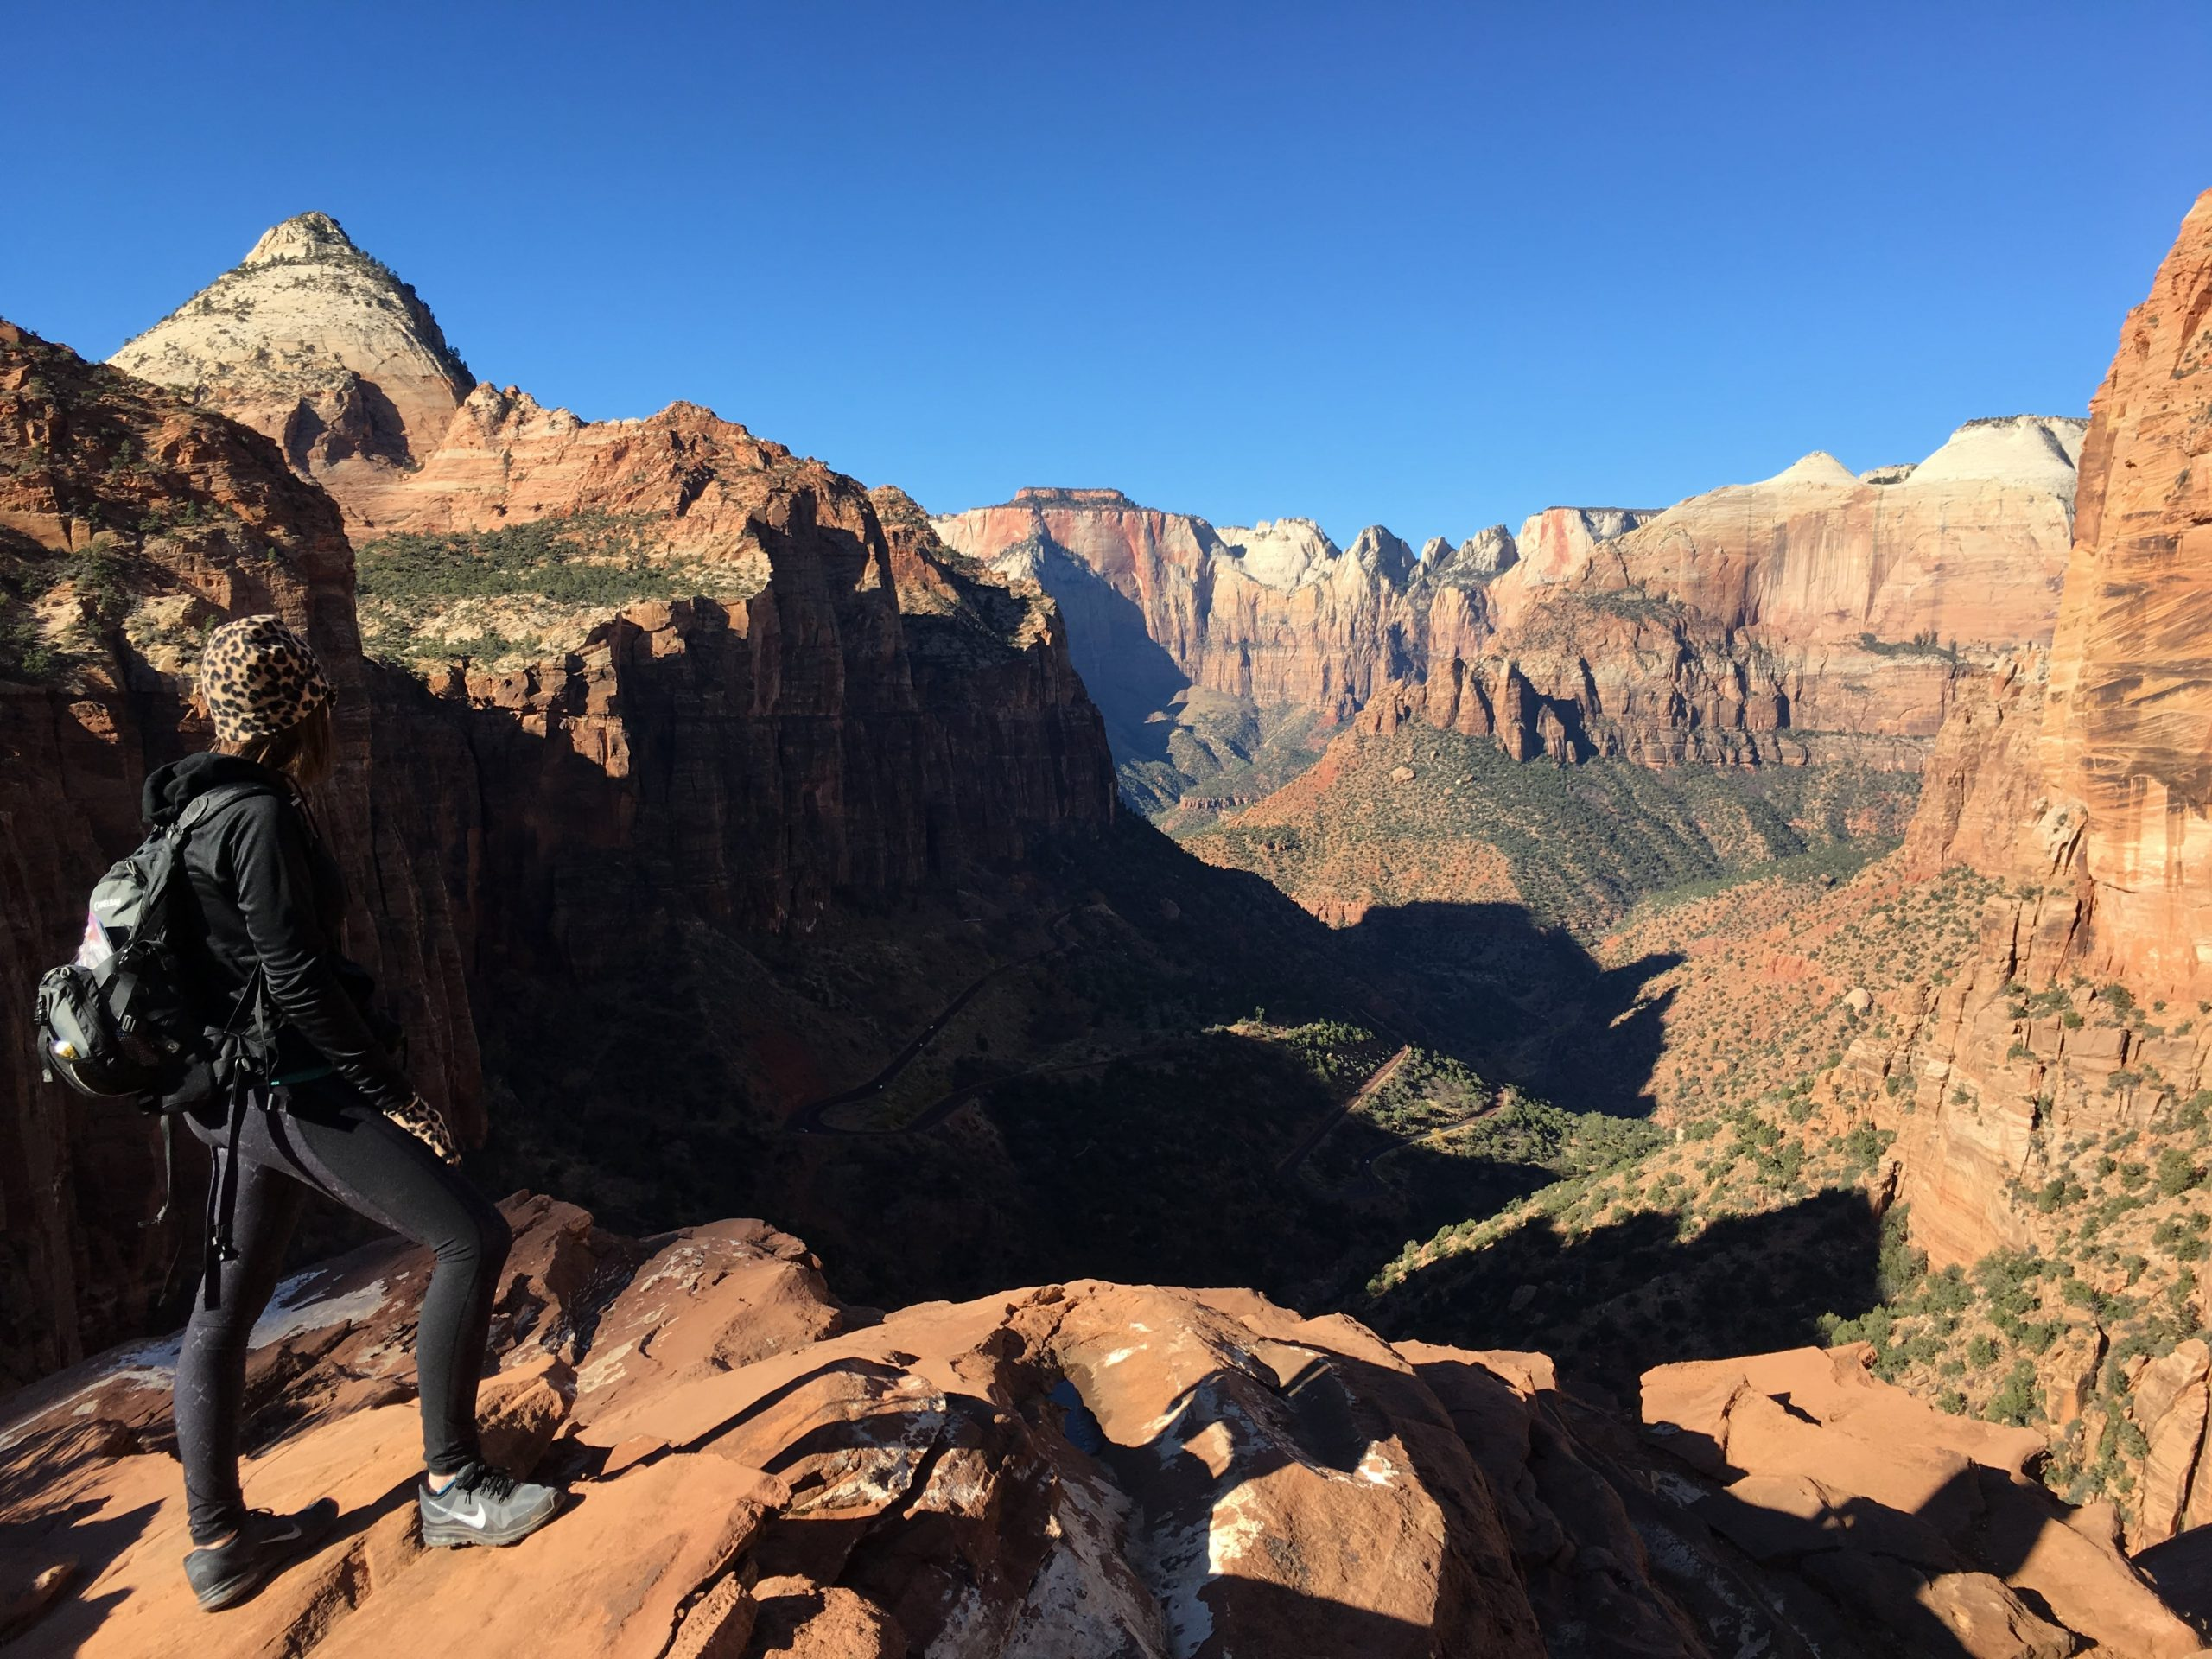 View from Canyon Overlook Trail at Zion National Park